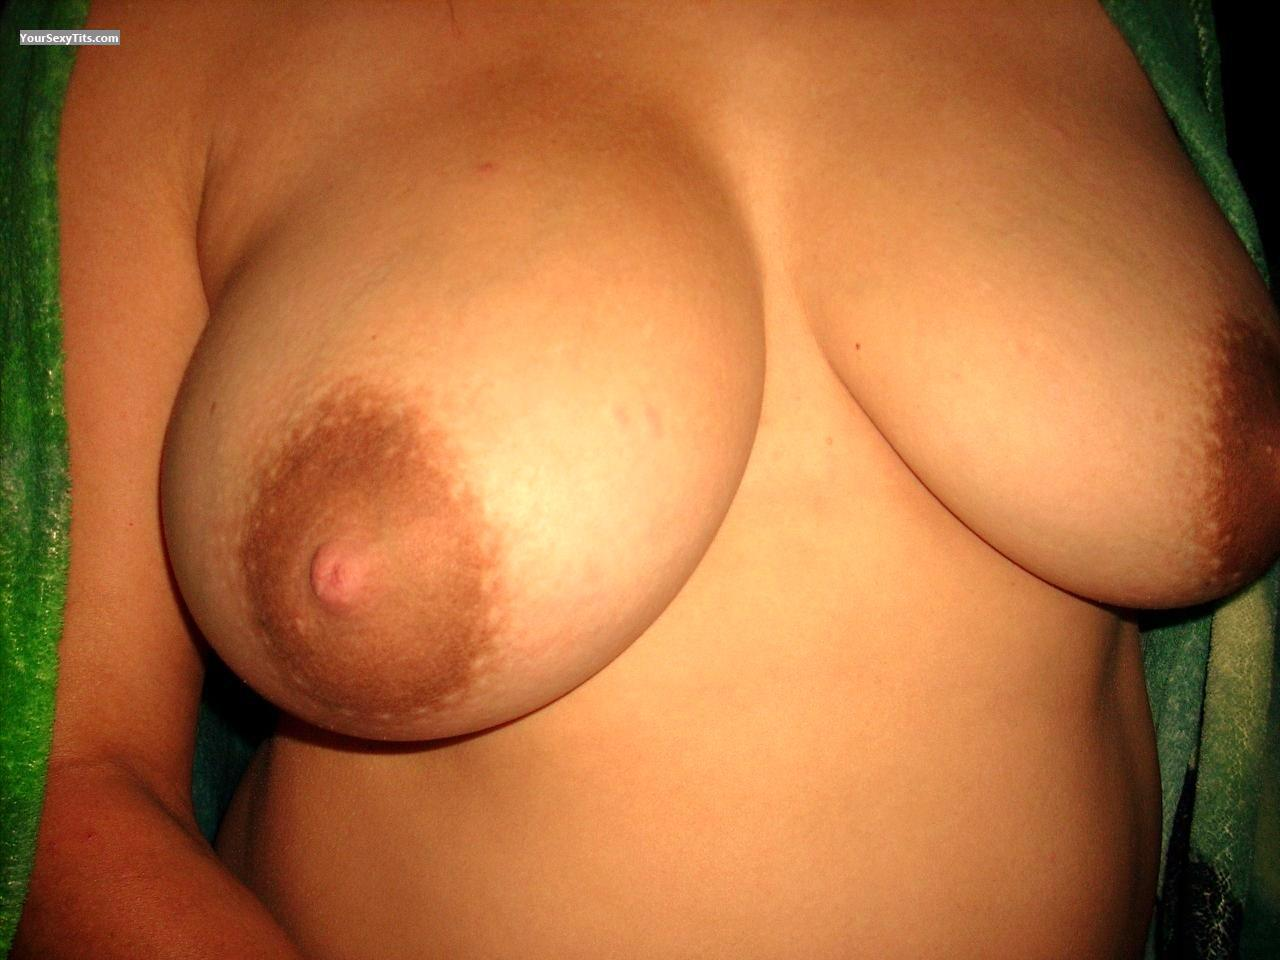 Very big Tits Texastatas